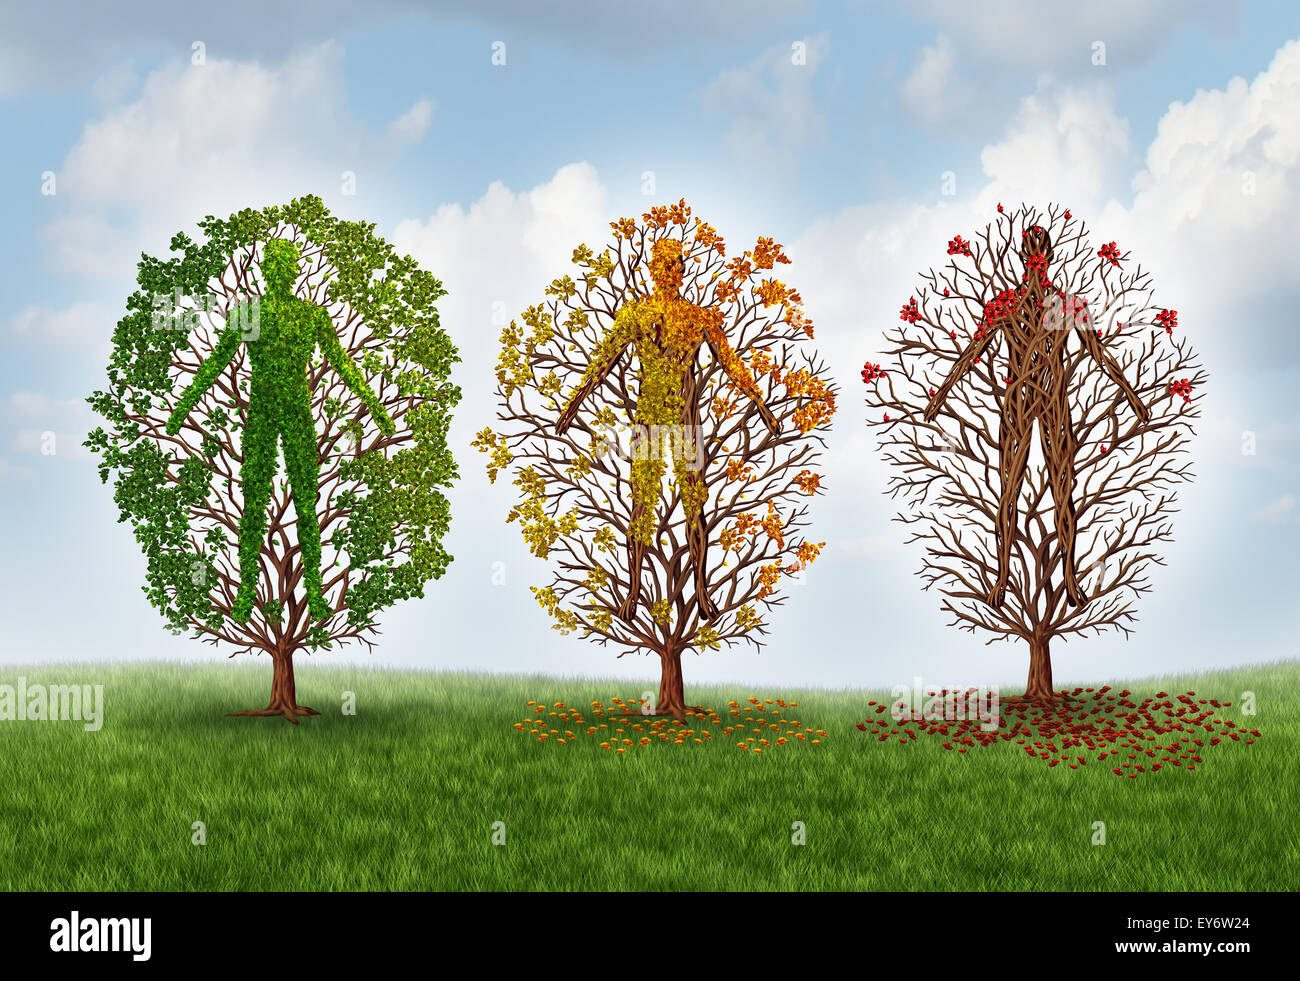 Human aging concept and deterioration of health due to disease in the body as a healthy green tree shaped as a person - Stock Image